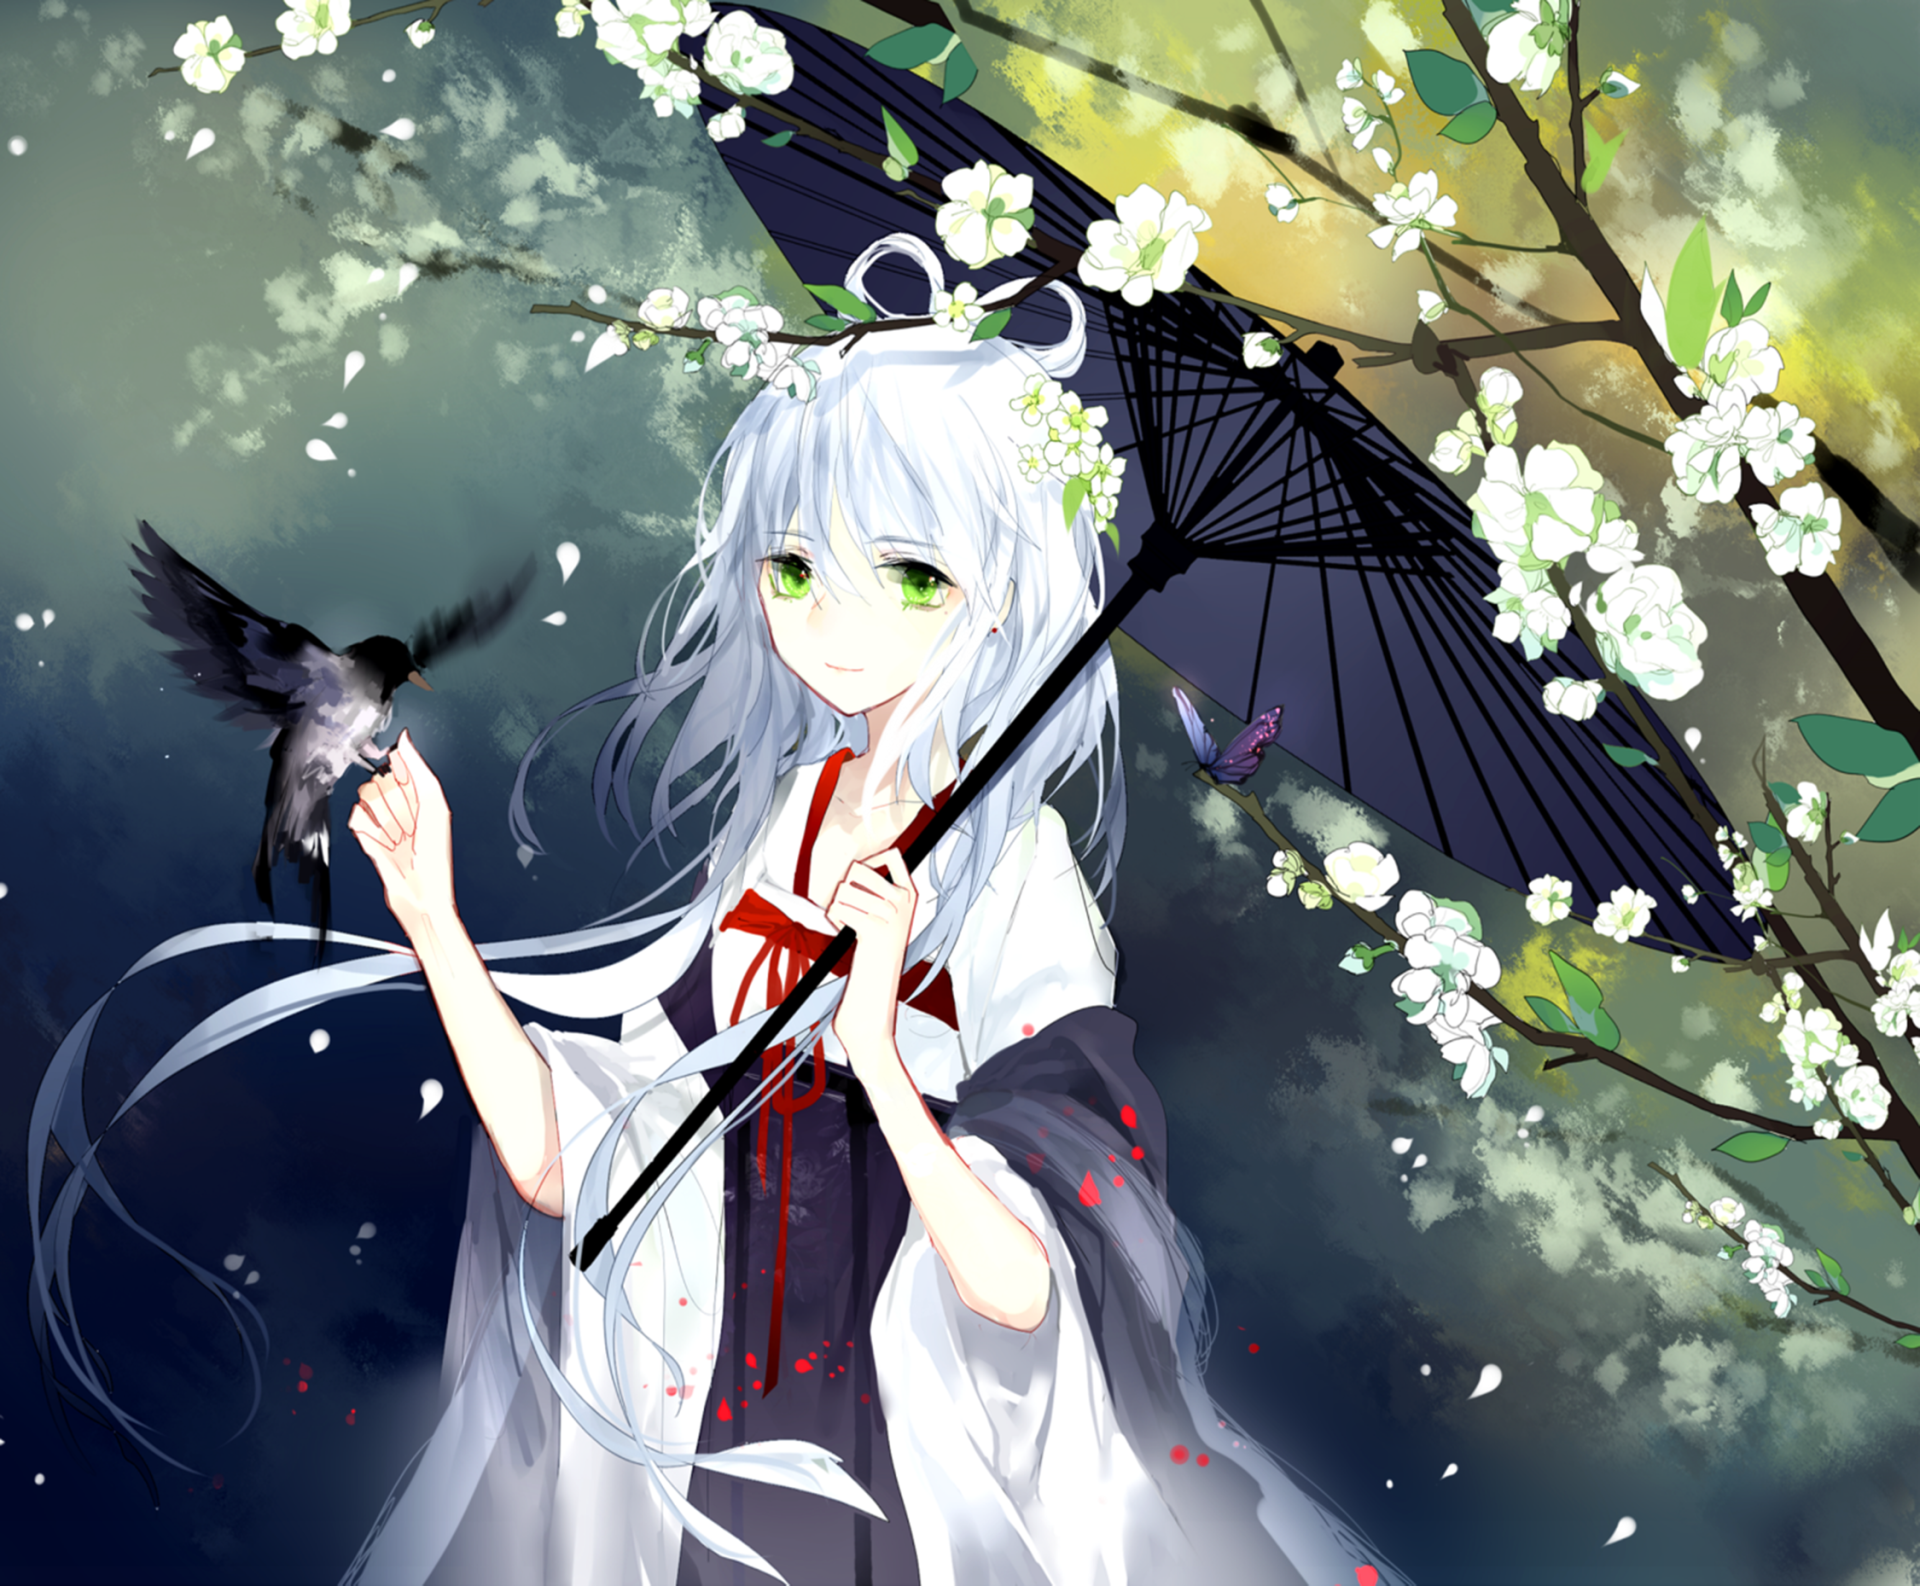 Anime - Original  White Hair Bird Green Eyes Flower Umbrella Wallpaper